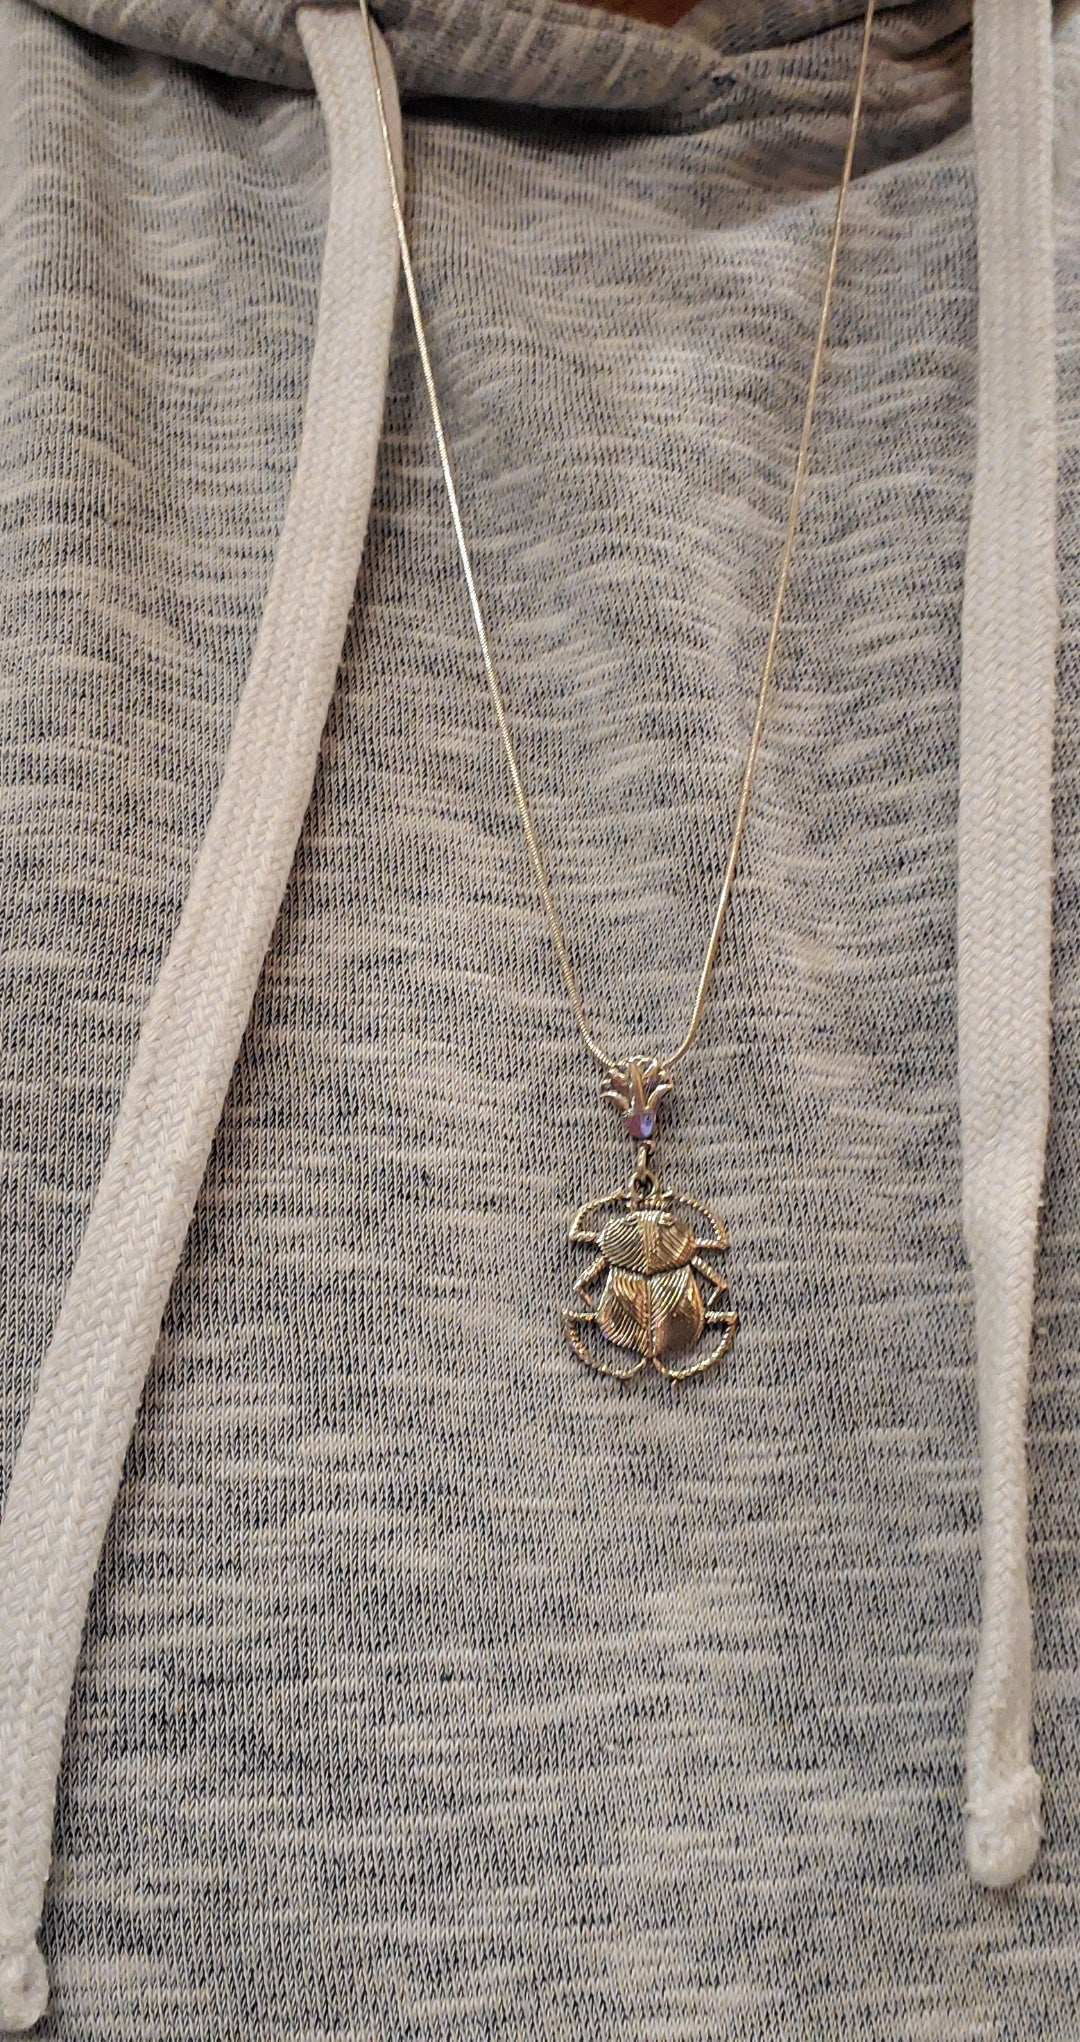 Silver Scarab Pendant - Made in Egypt